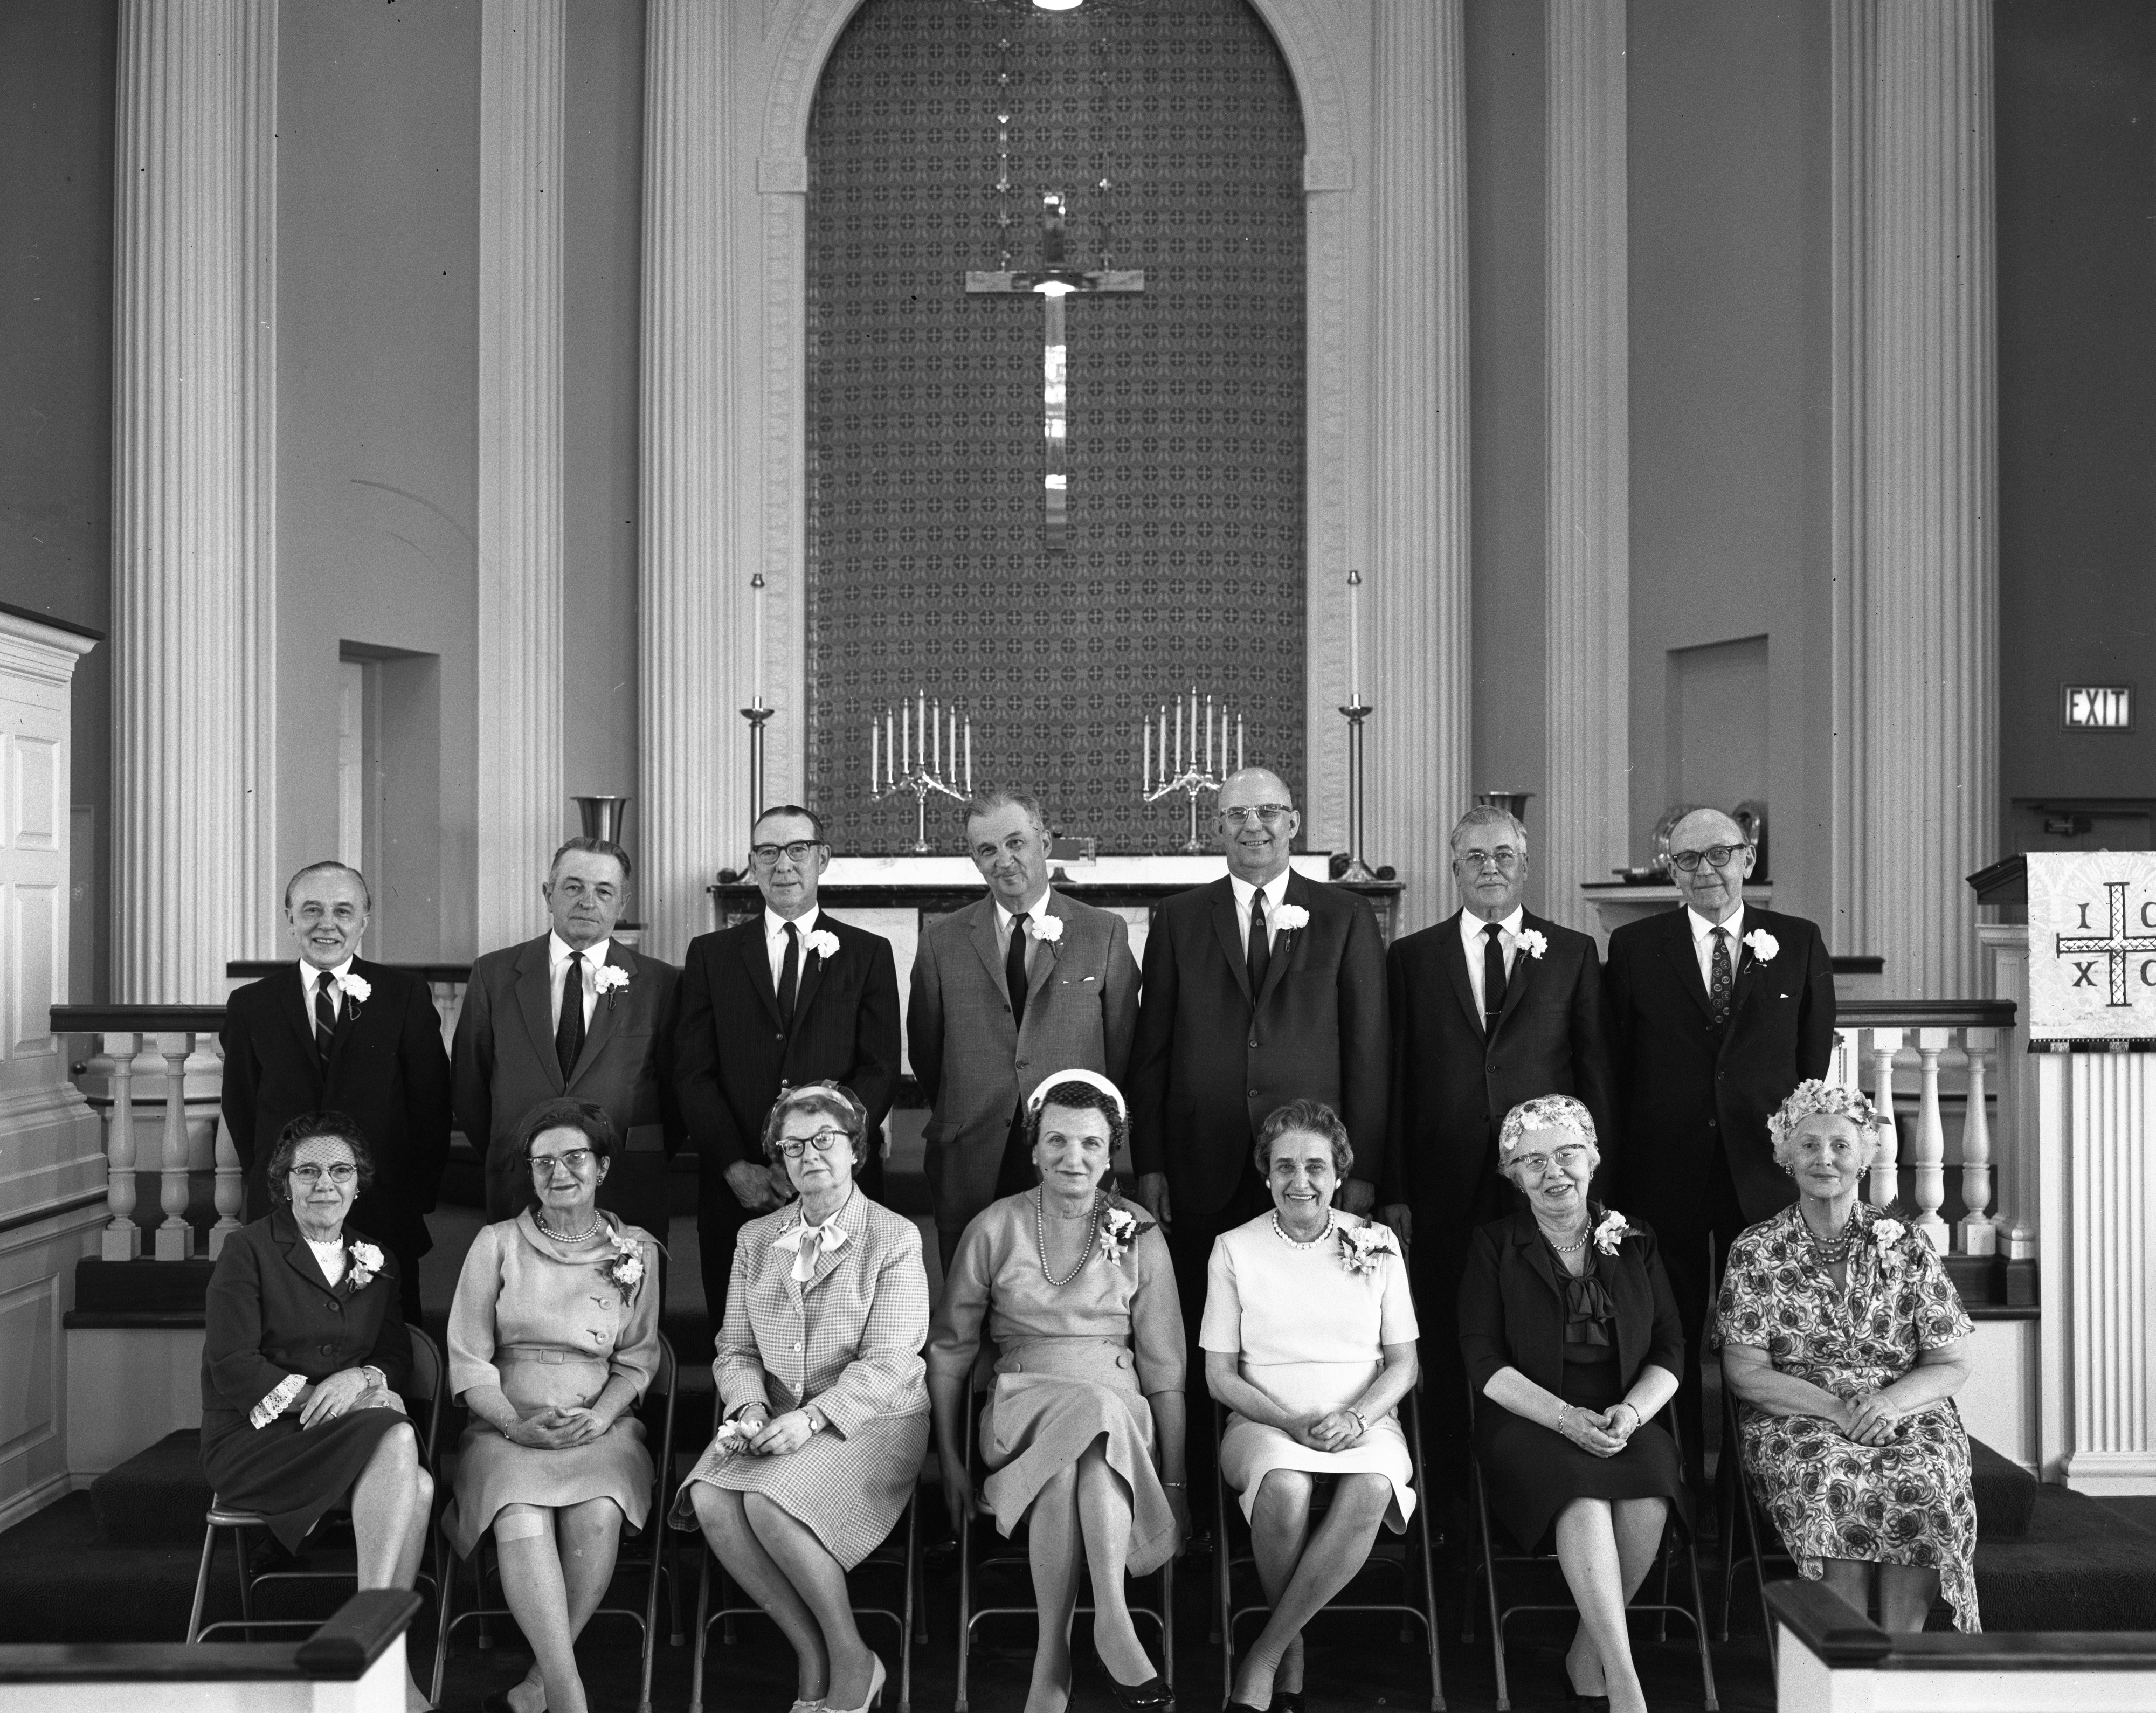 Fiftieth Anniversary of Zion Lutheran Church Confirmation Class of 1916, April 1966 image